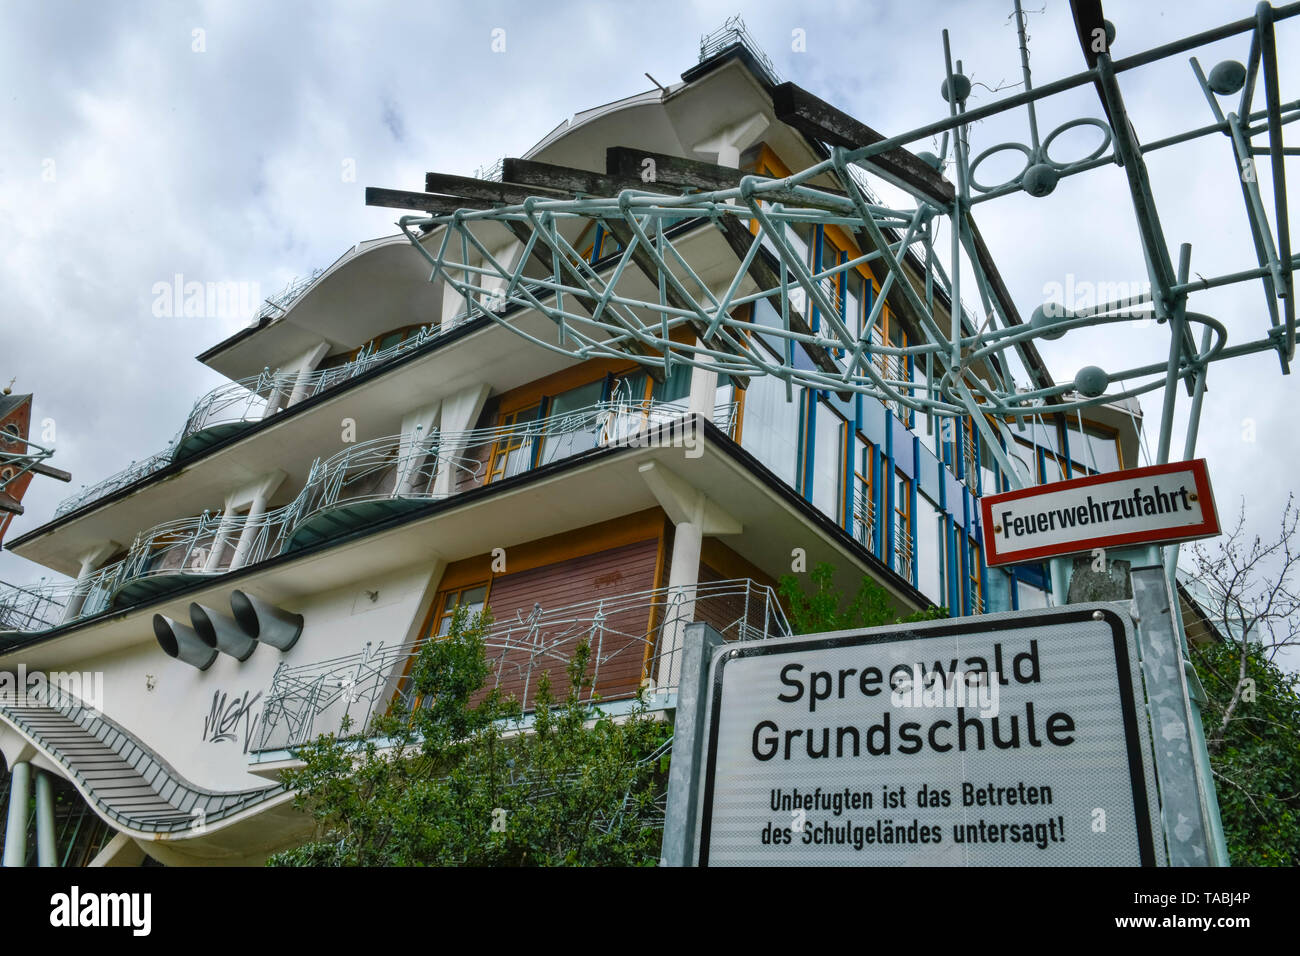 Spreewald elementary school, Pallasstrasse, beauty's mountain, Berlin, Germany, Spreewaldgrundschule, Pallasstraße, Schöneberg, Deutschland Stock Photo